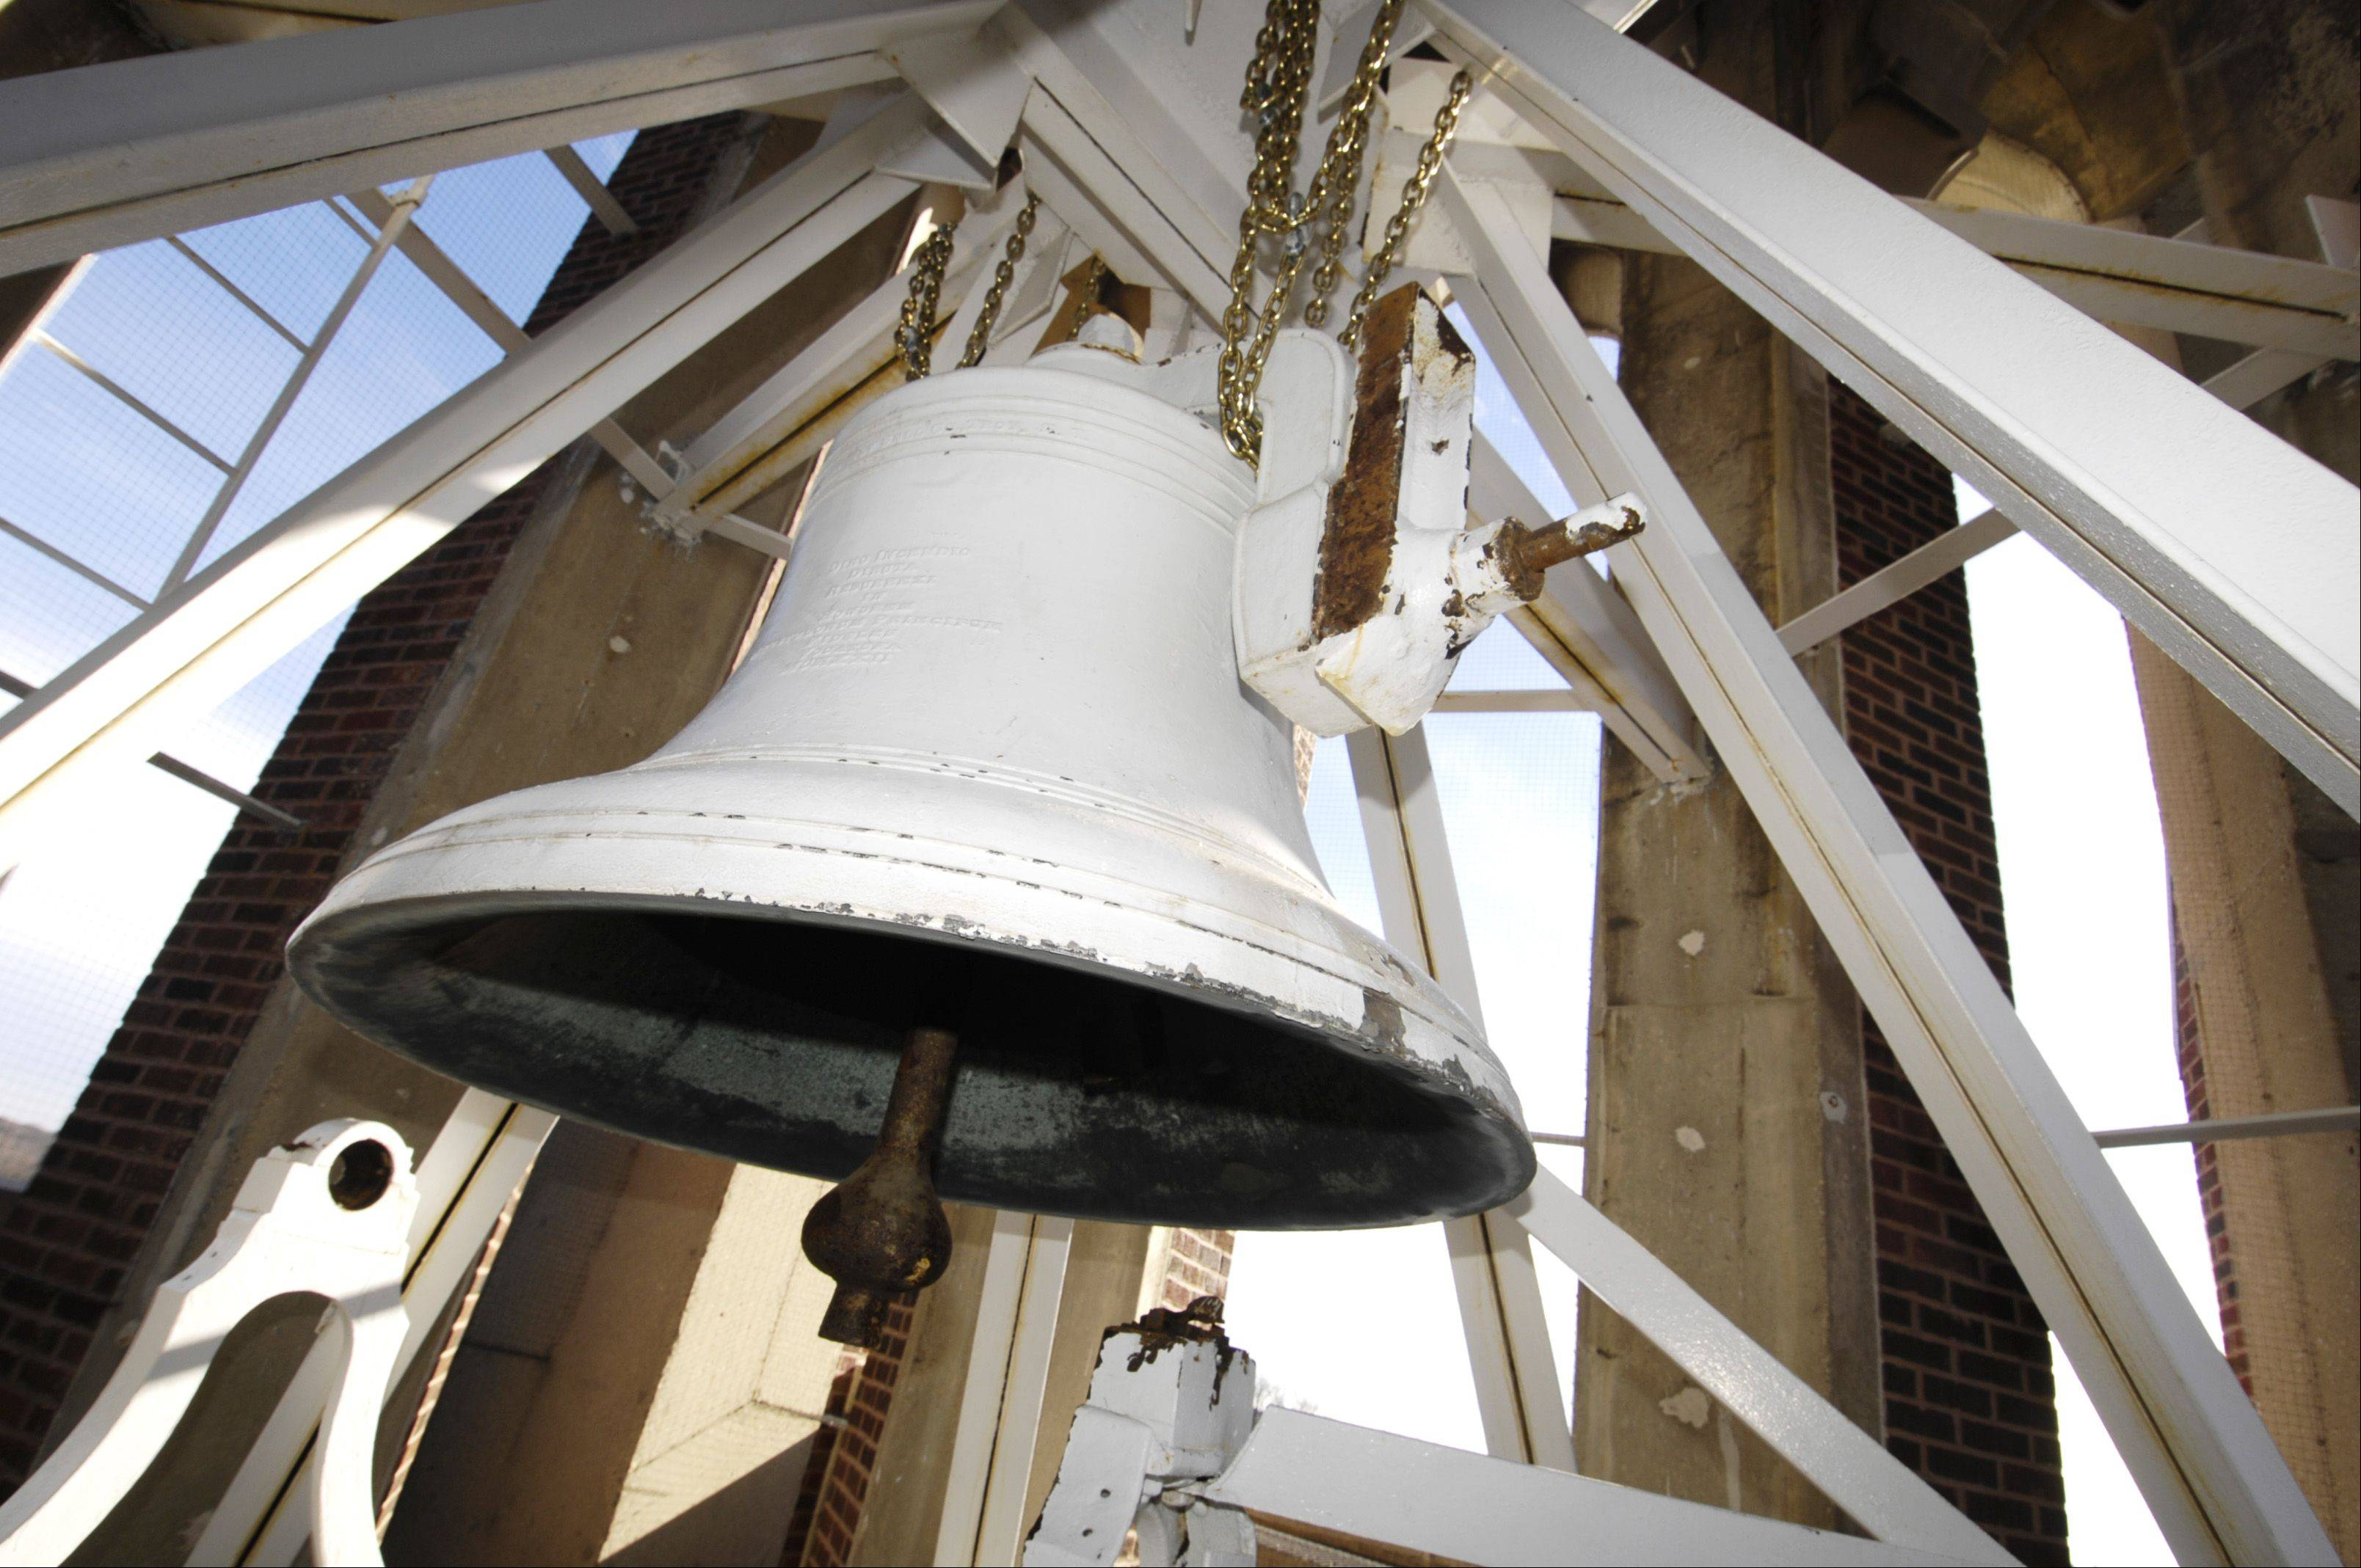 Ss. Peter and Paul Catholic Church leaders plan to begin using its bells as a call to prayer as well as in celebration and in mourning.